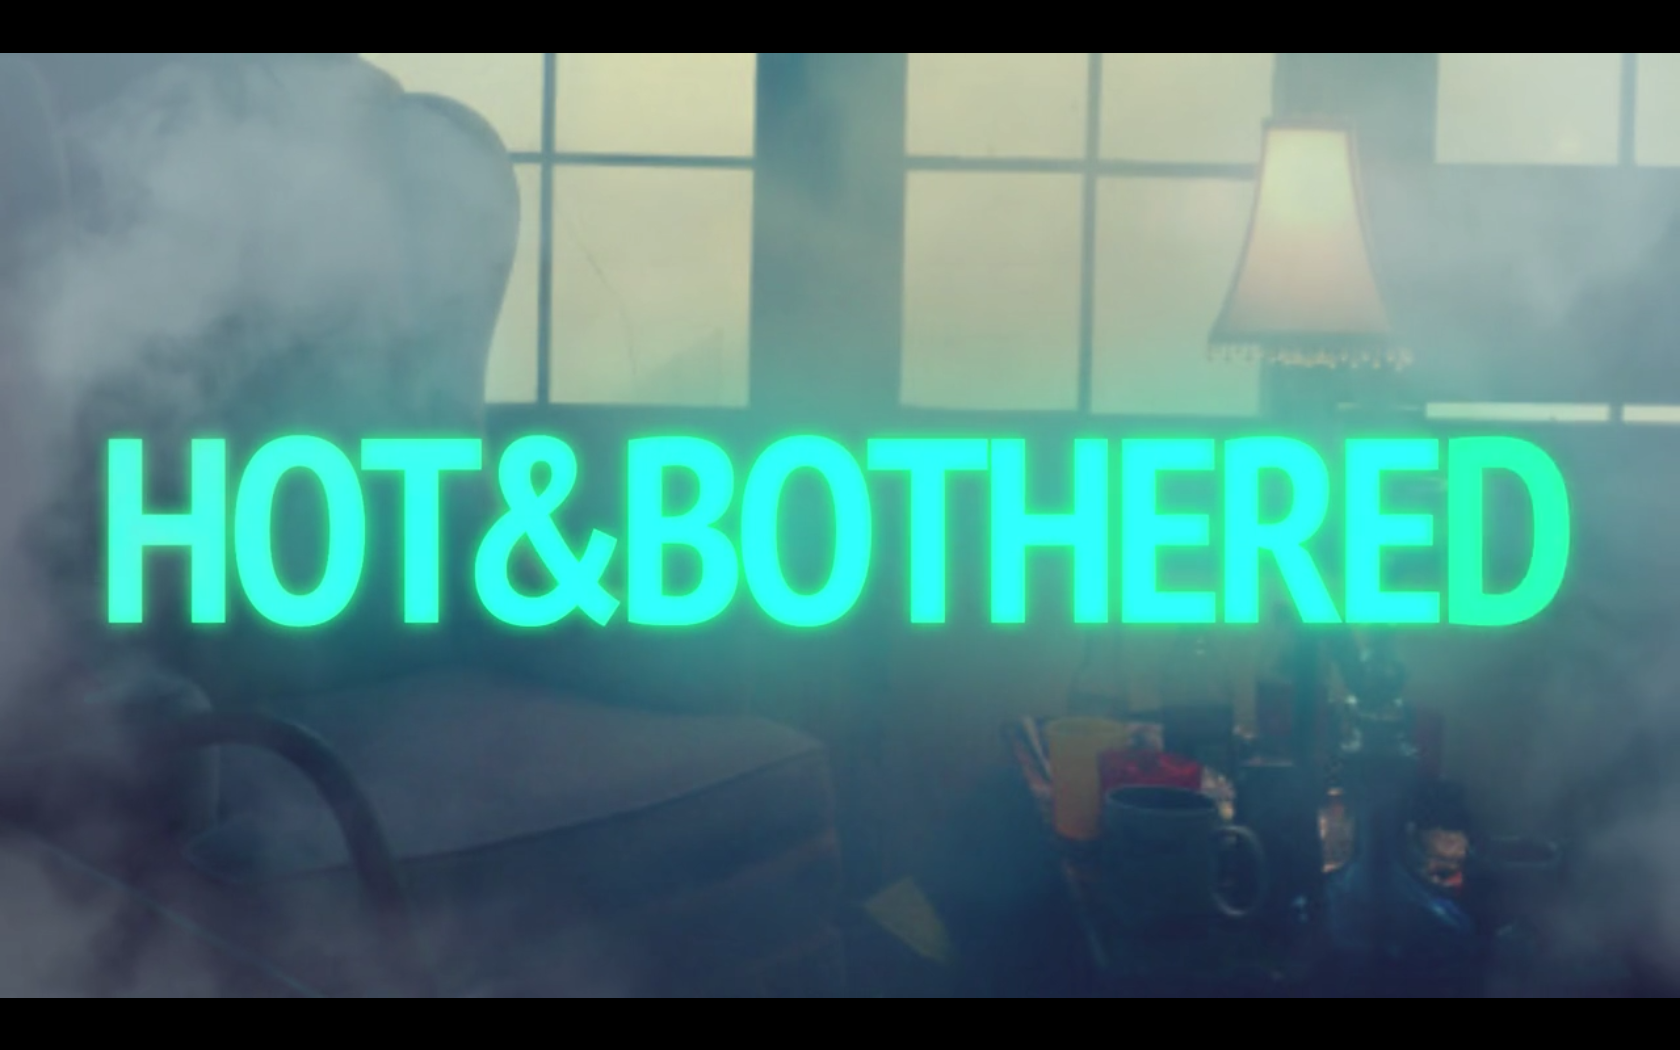 Hot & Bothered:A Comedic Web Series Written, Directed, and Starring Leah Byrd